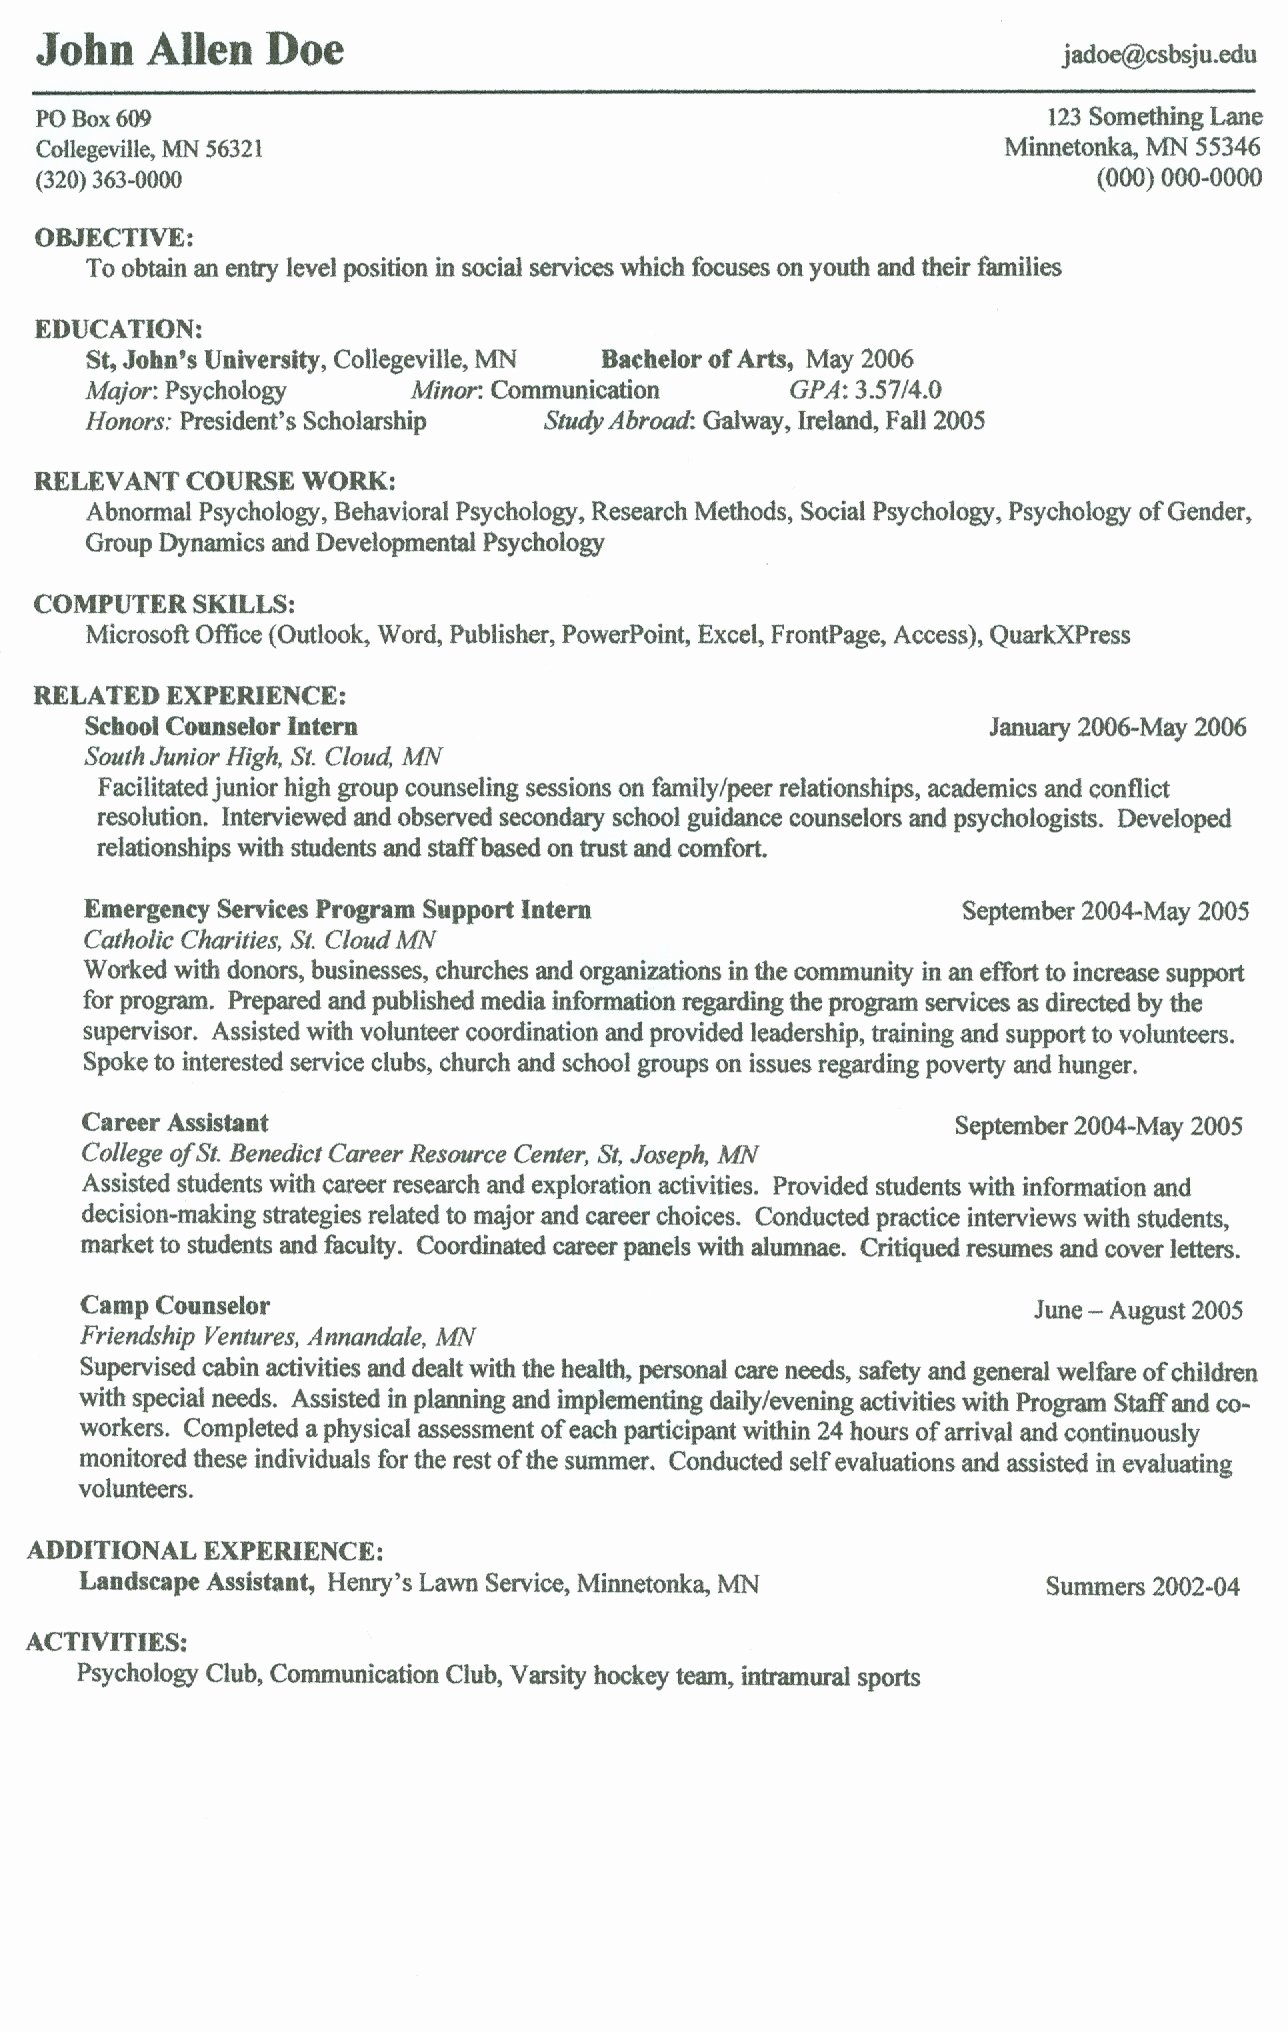 Resume for Campus Jobs Show Me A Example A Resume